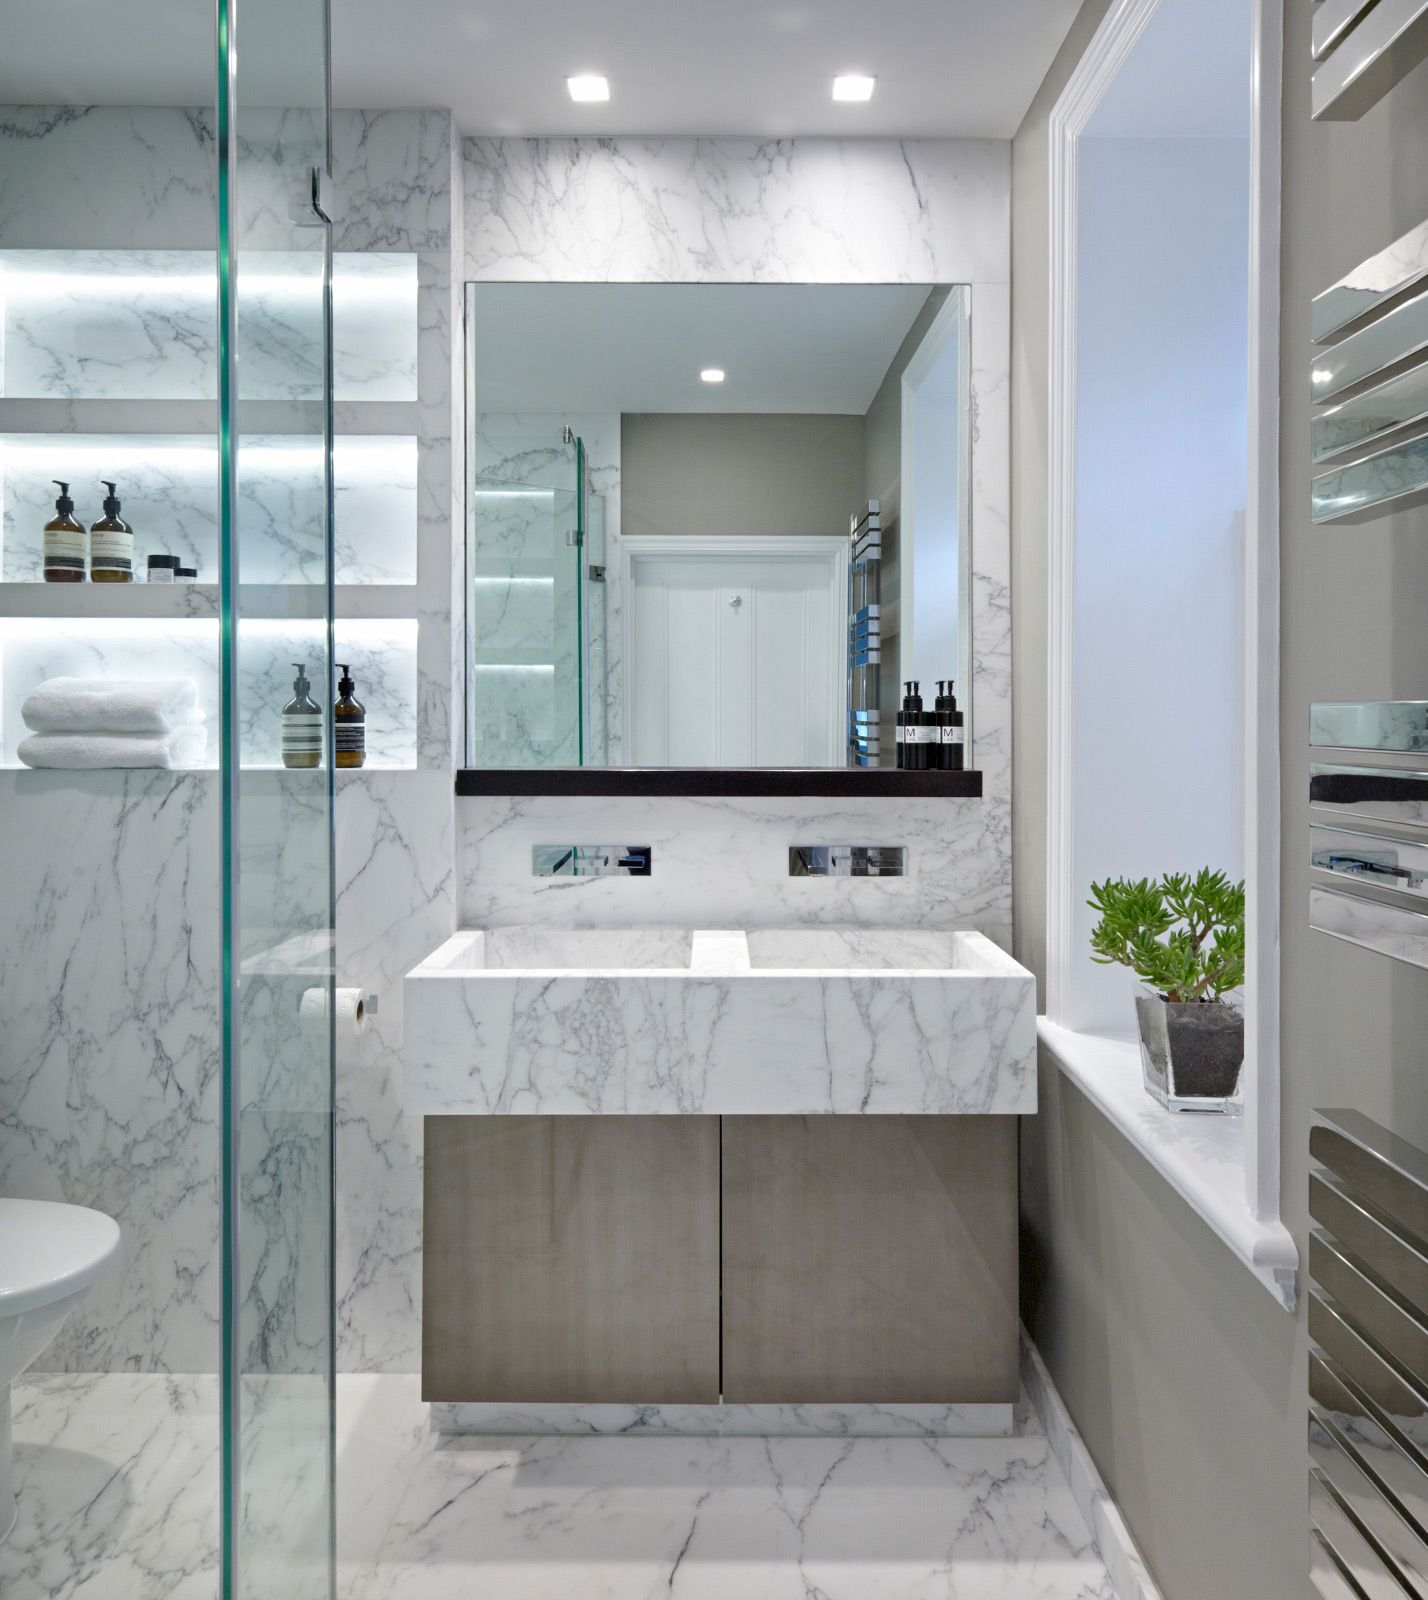 White Marble Bathroom In A Home In Yorkshire, UK Designed By Fiona Barratt